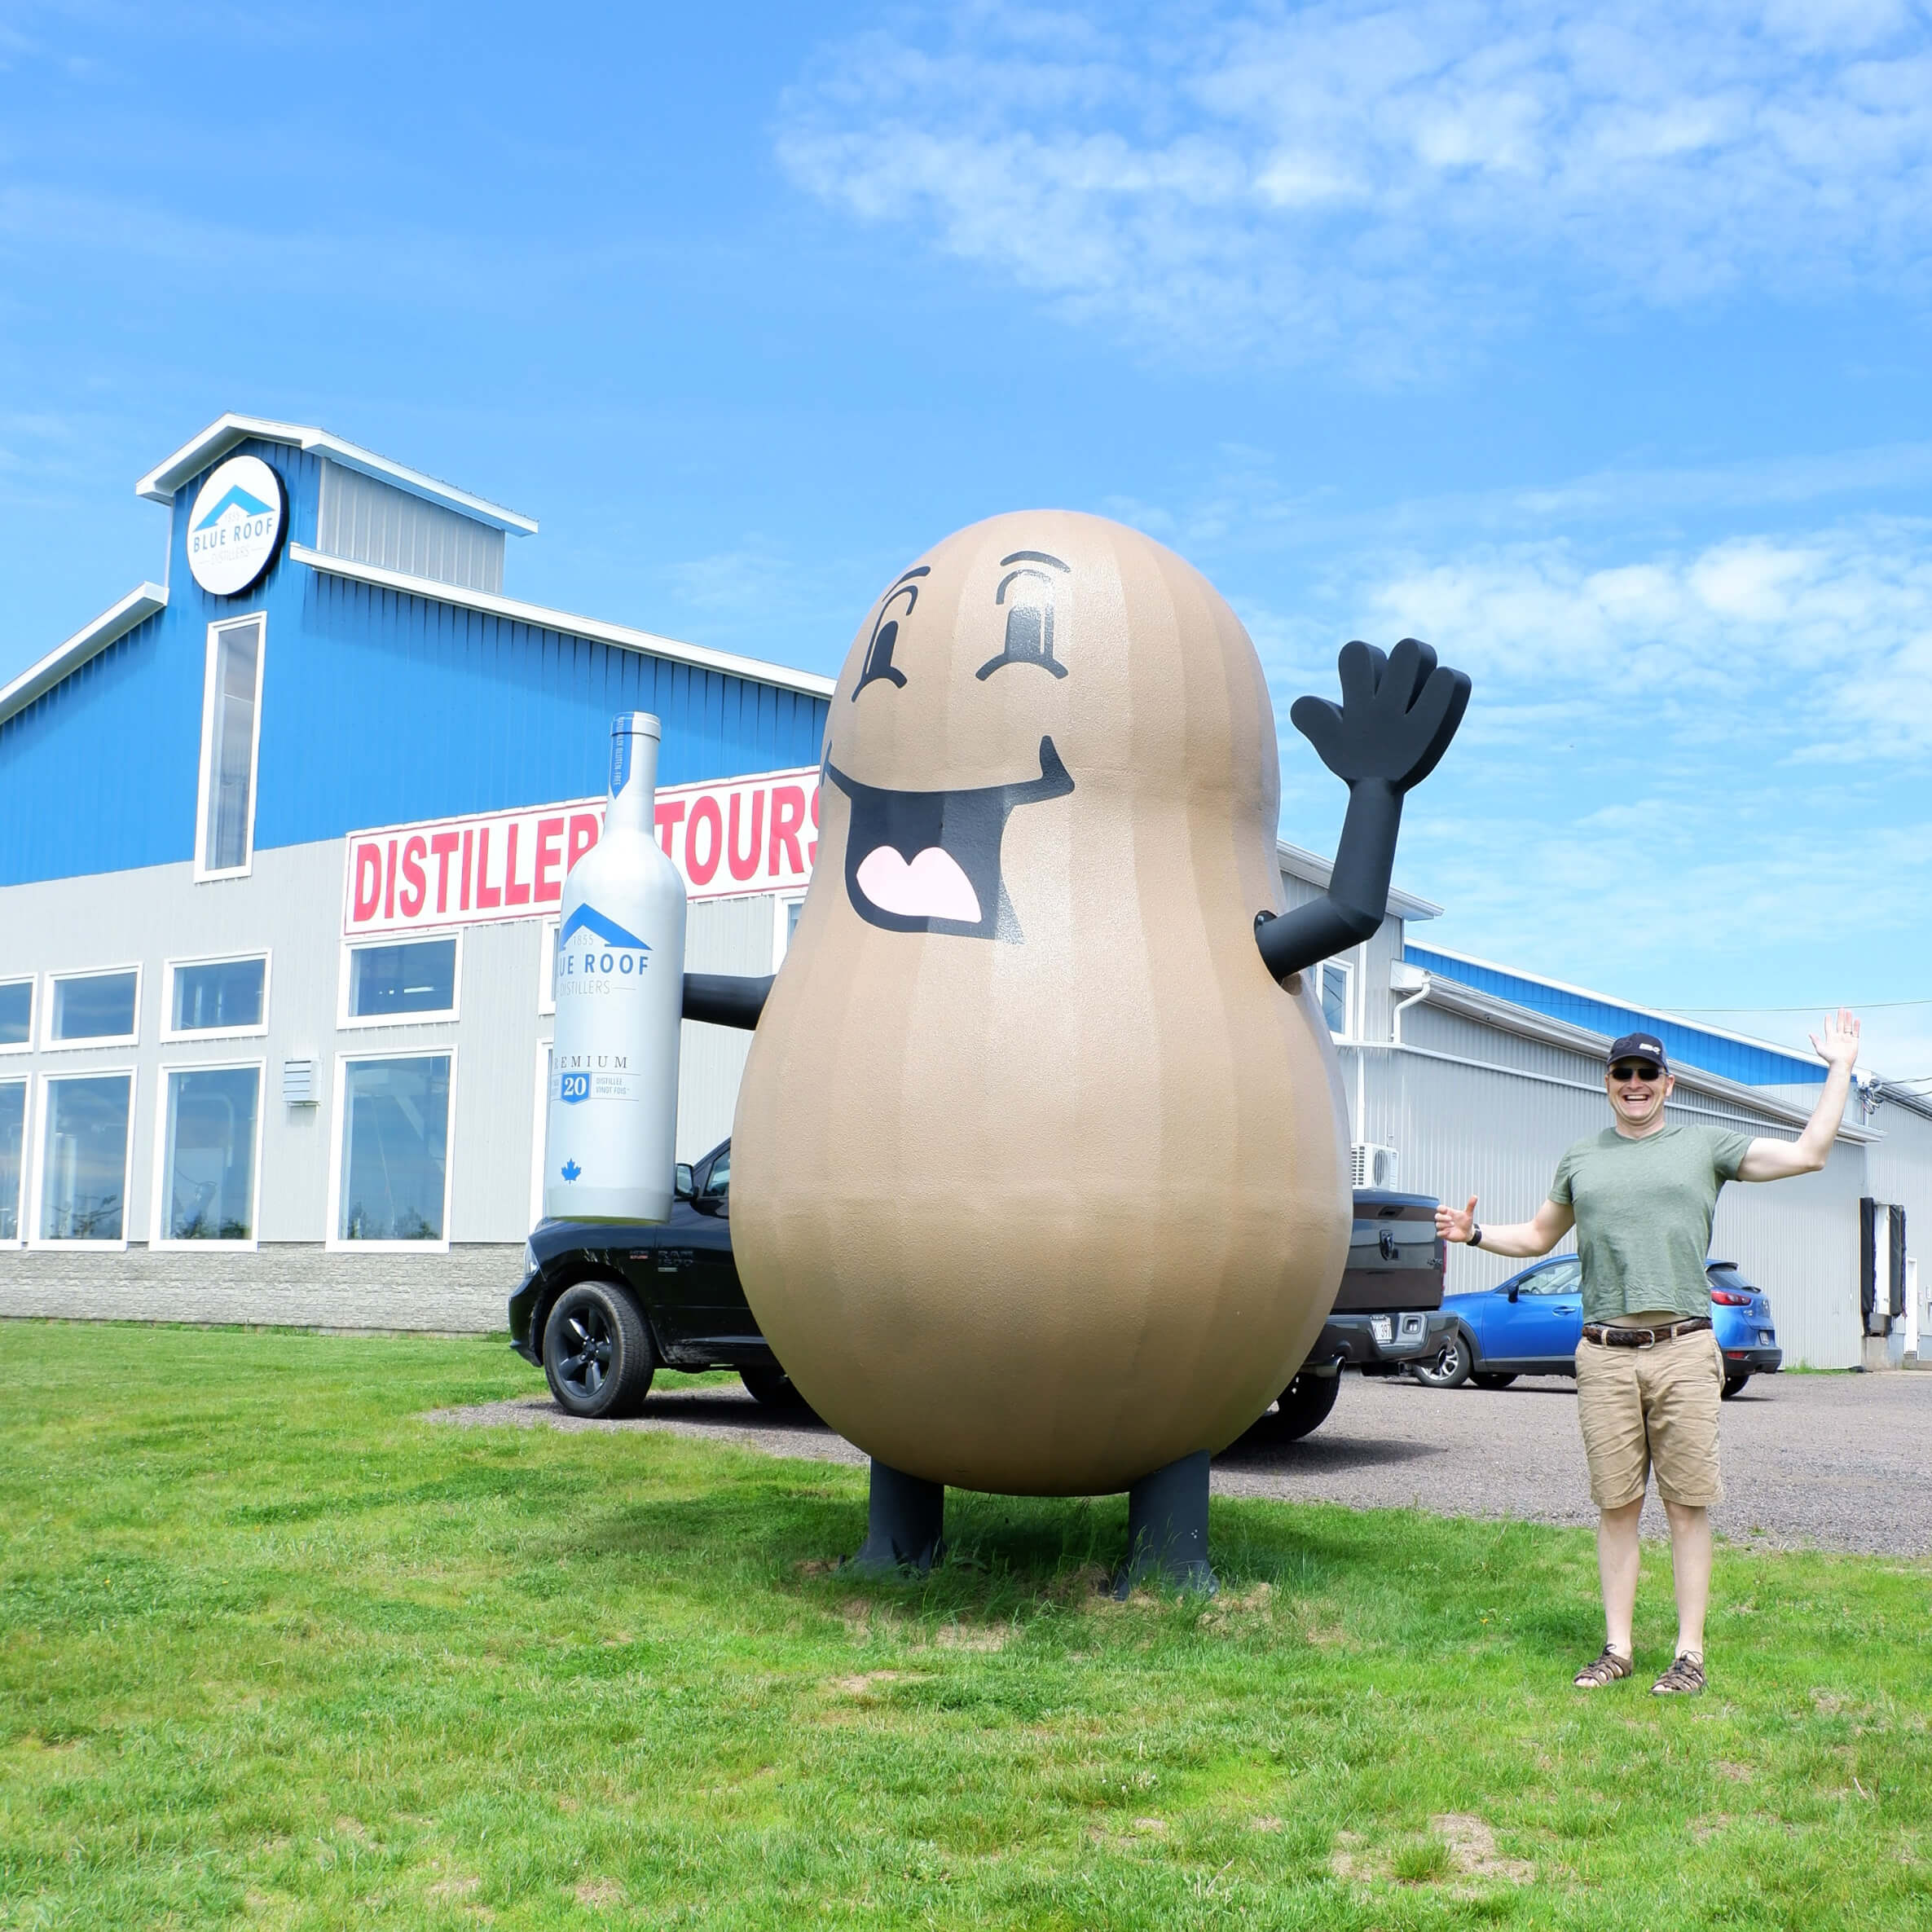 pickle planet papa next to the giant potato holding a bottle of vodka at blue roof distillers in new brunswick